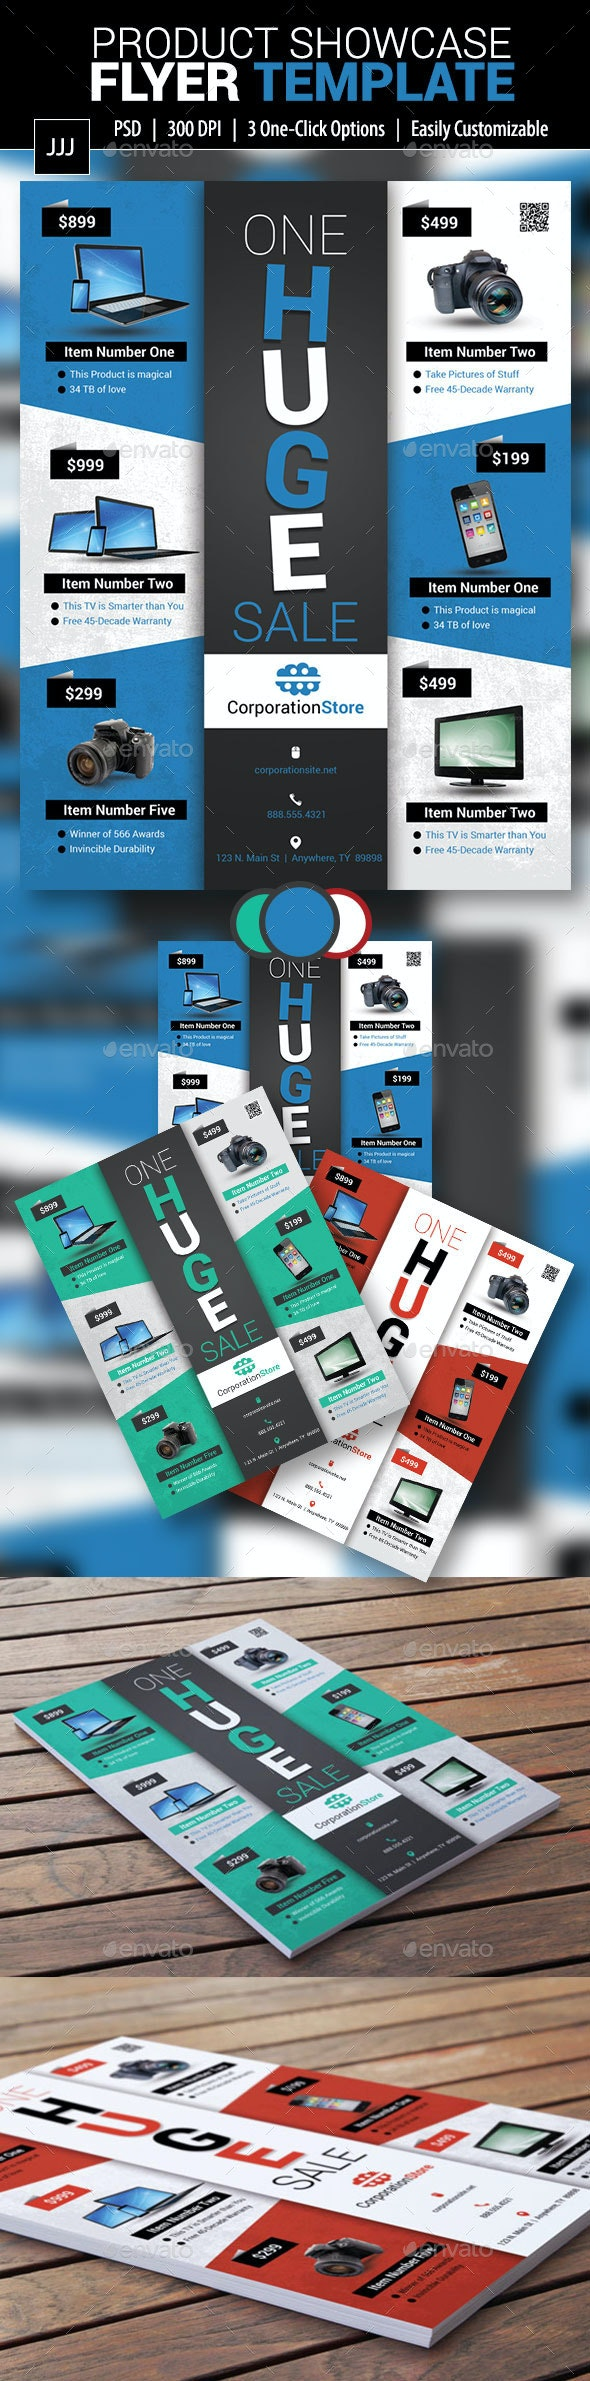 Product Showcase Flyer 12 - Commerce Flyers